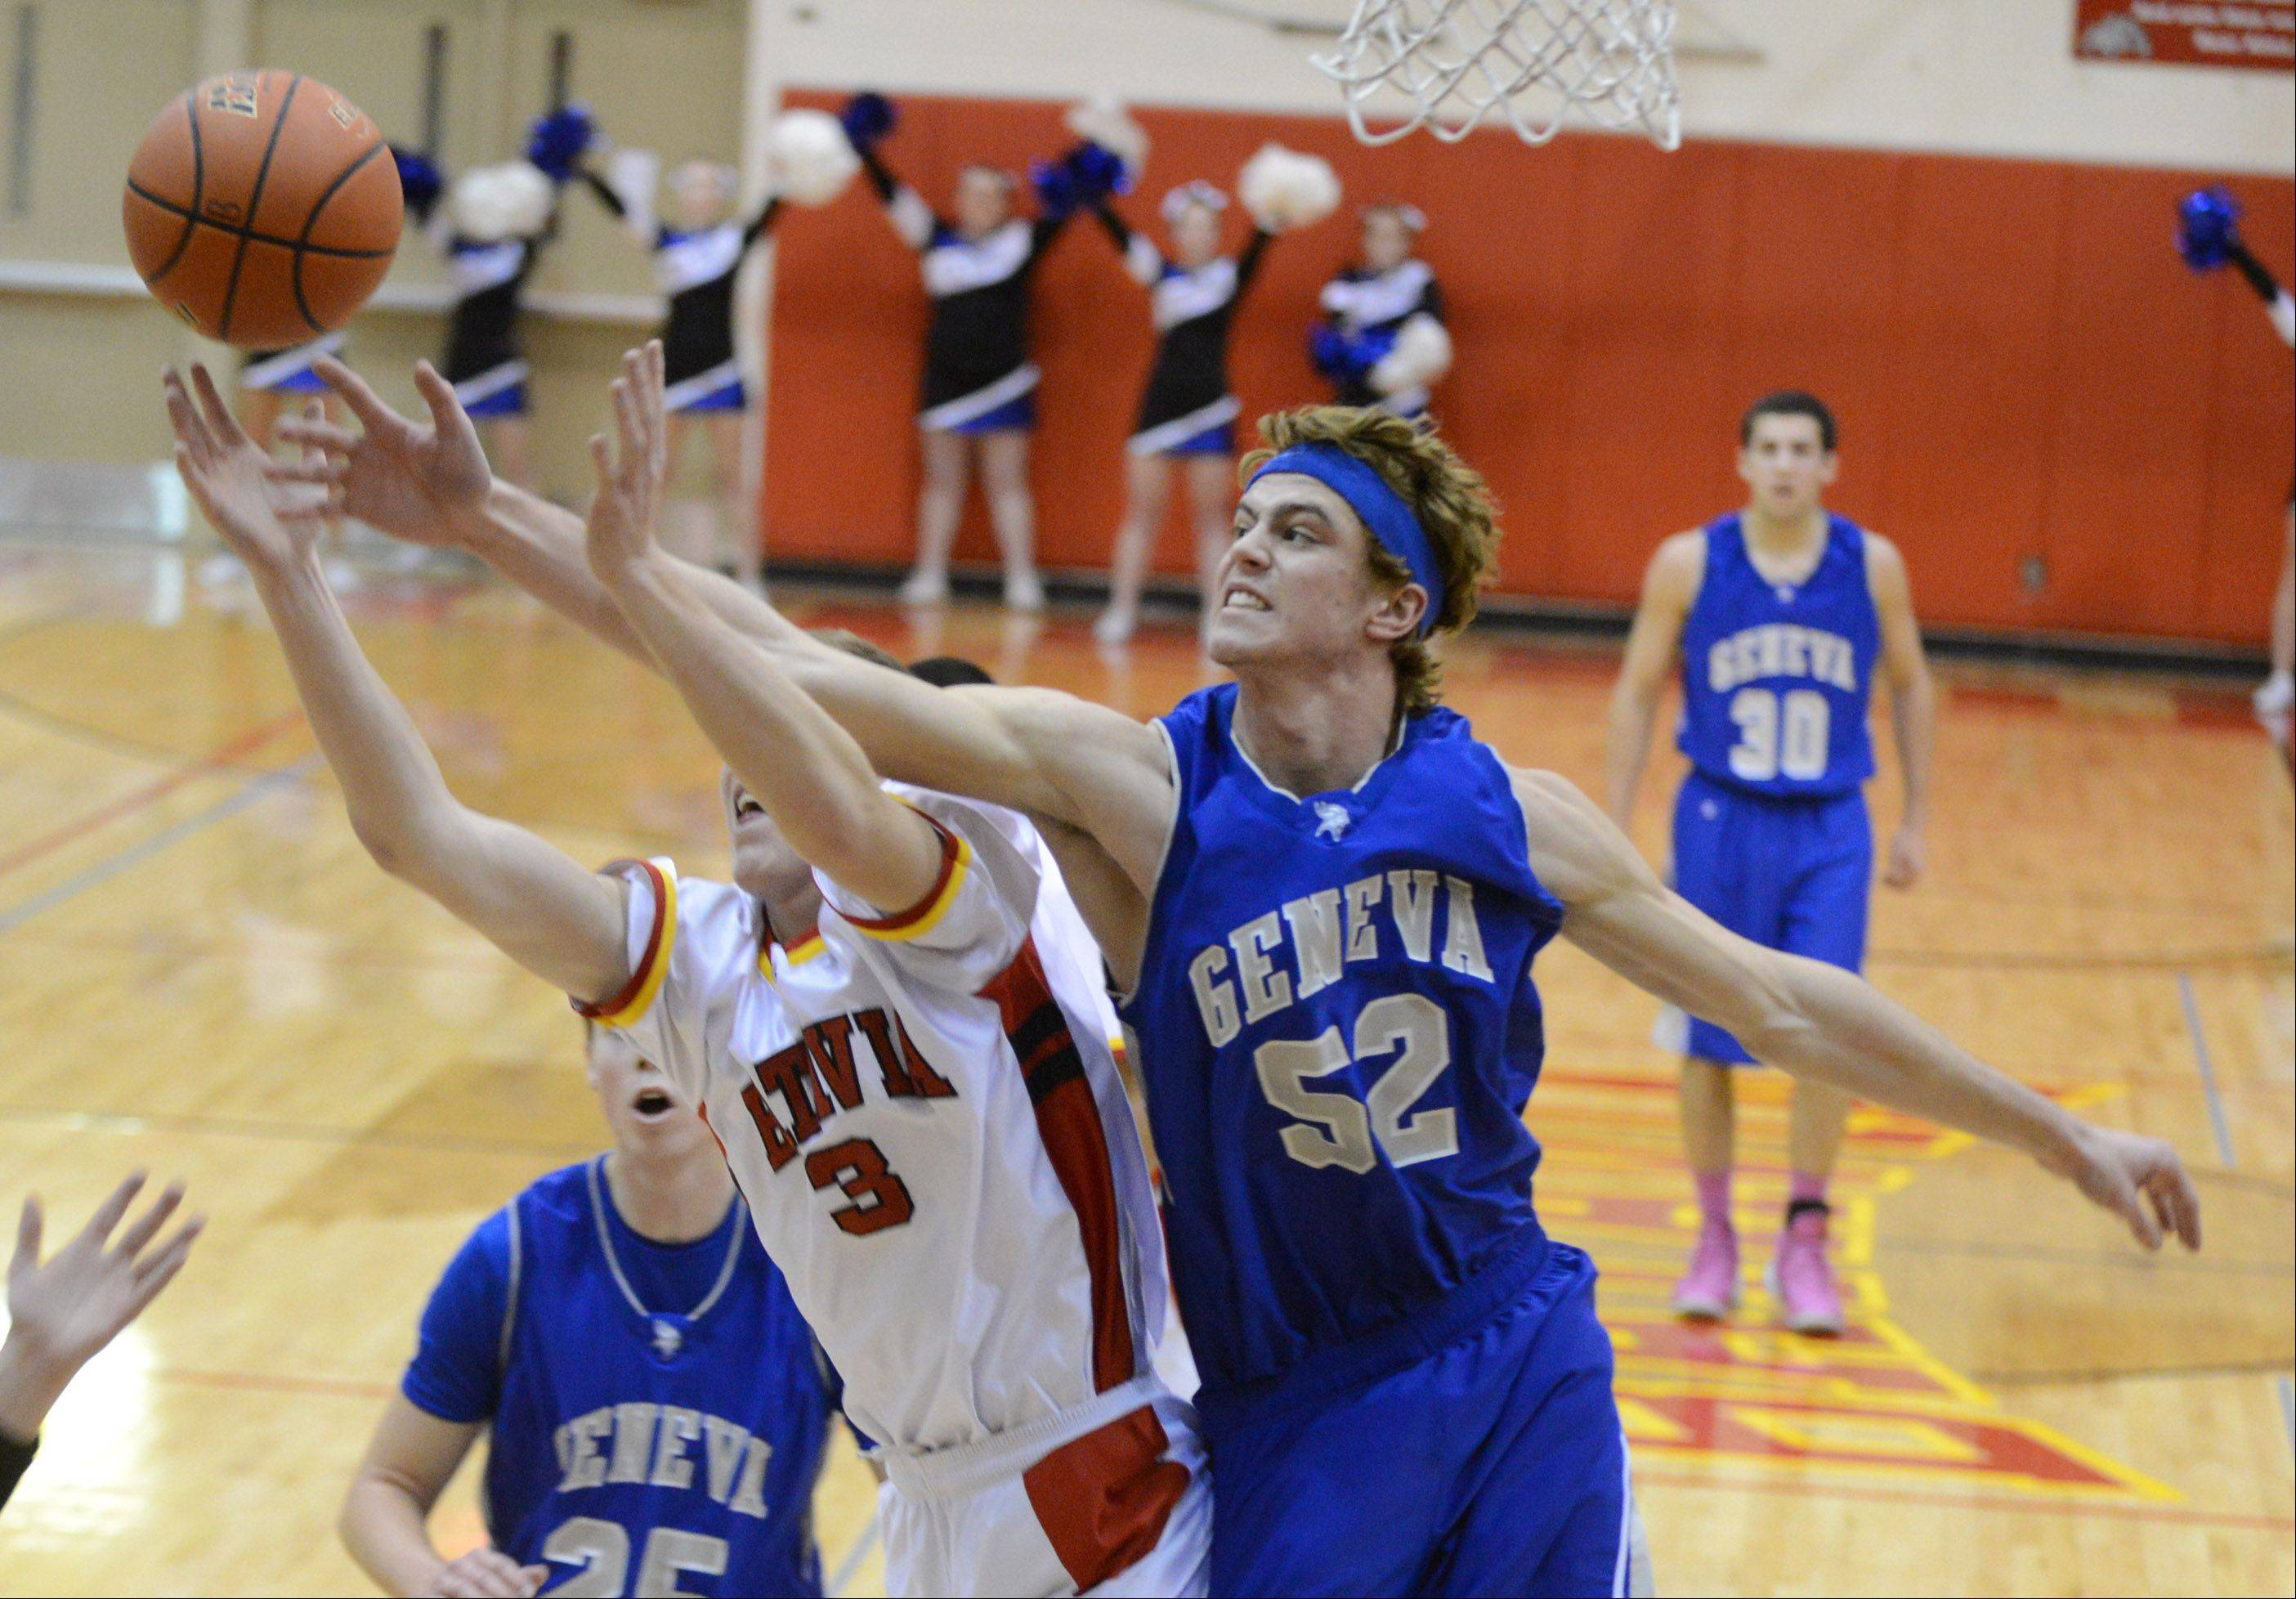 Images from the Geneva vs. Batavia boys basketball game Friday, December 6, 2013.